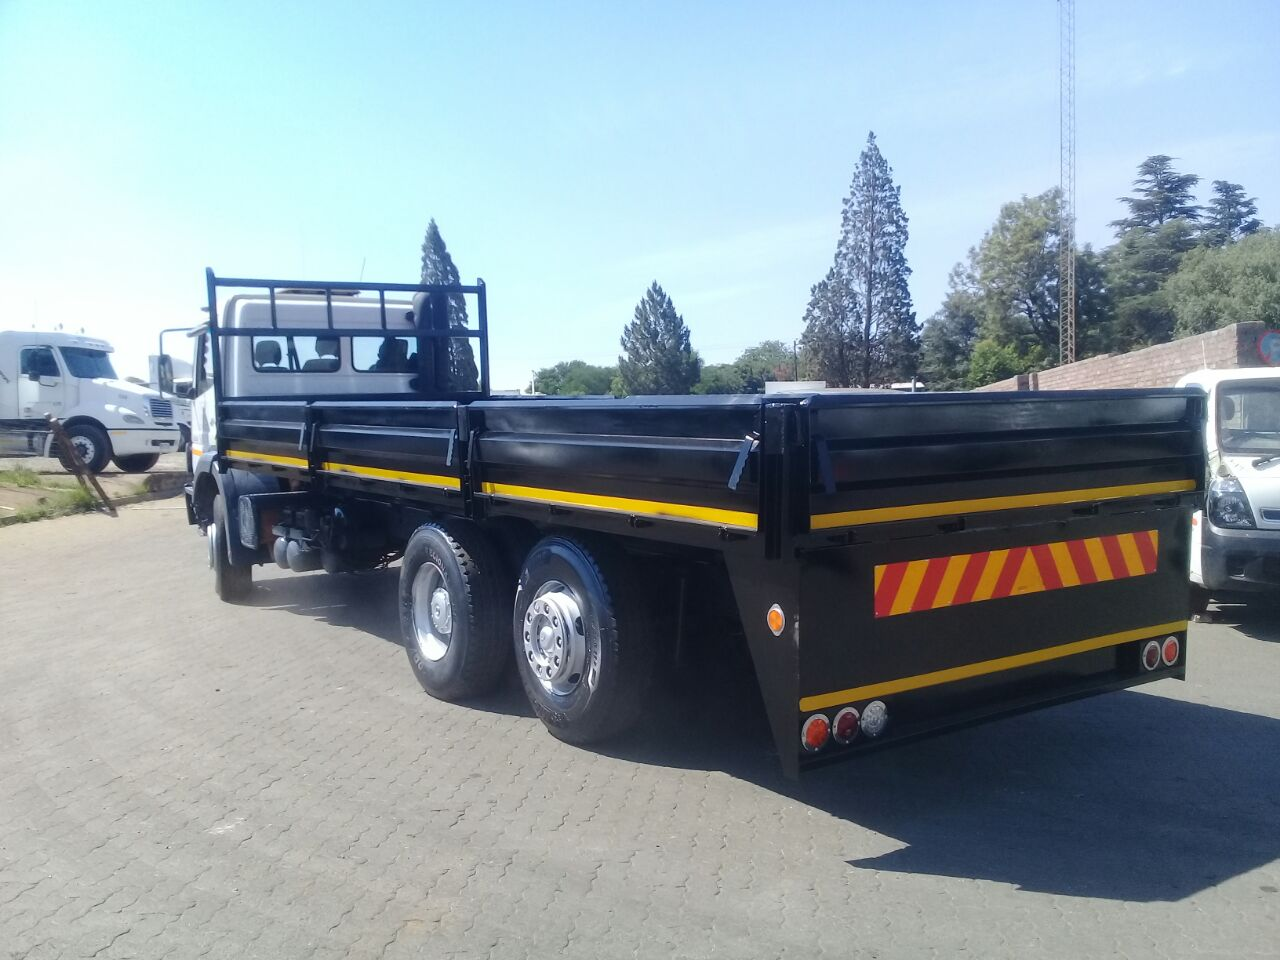 BEST QUALITY DROP SIDE TRAILERS FOR BEST PRICE CALL US 0119141035/0635408390